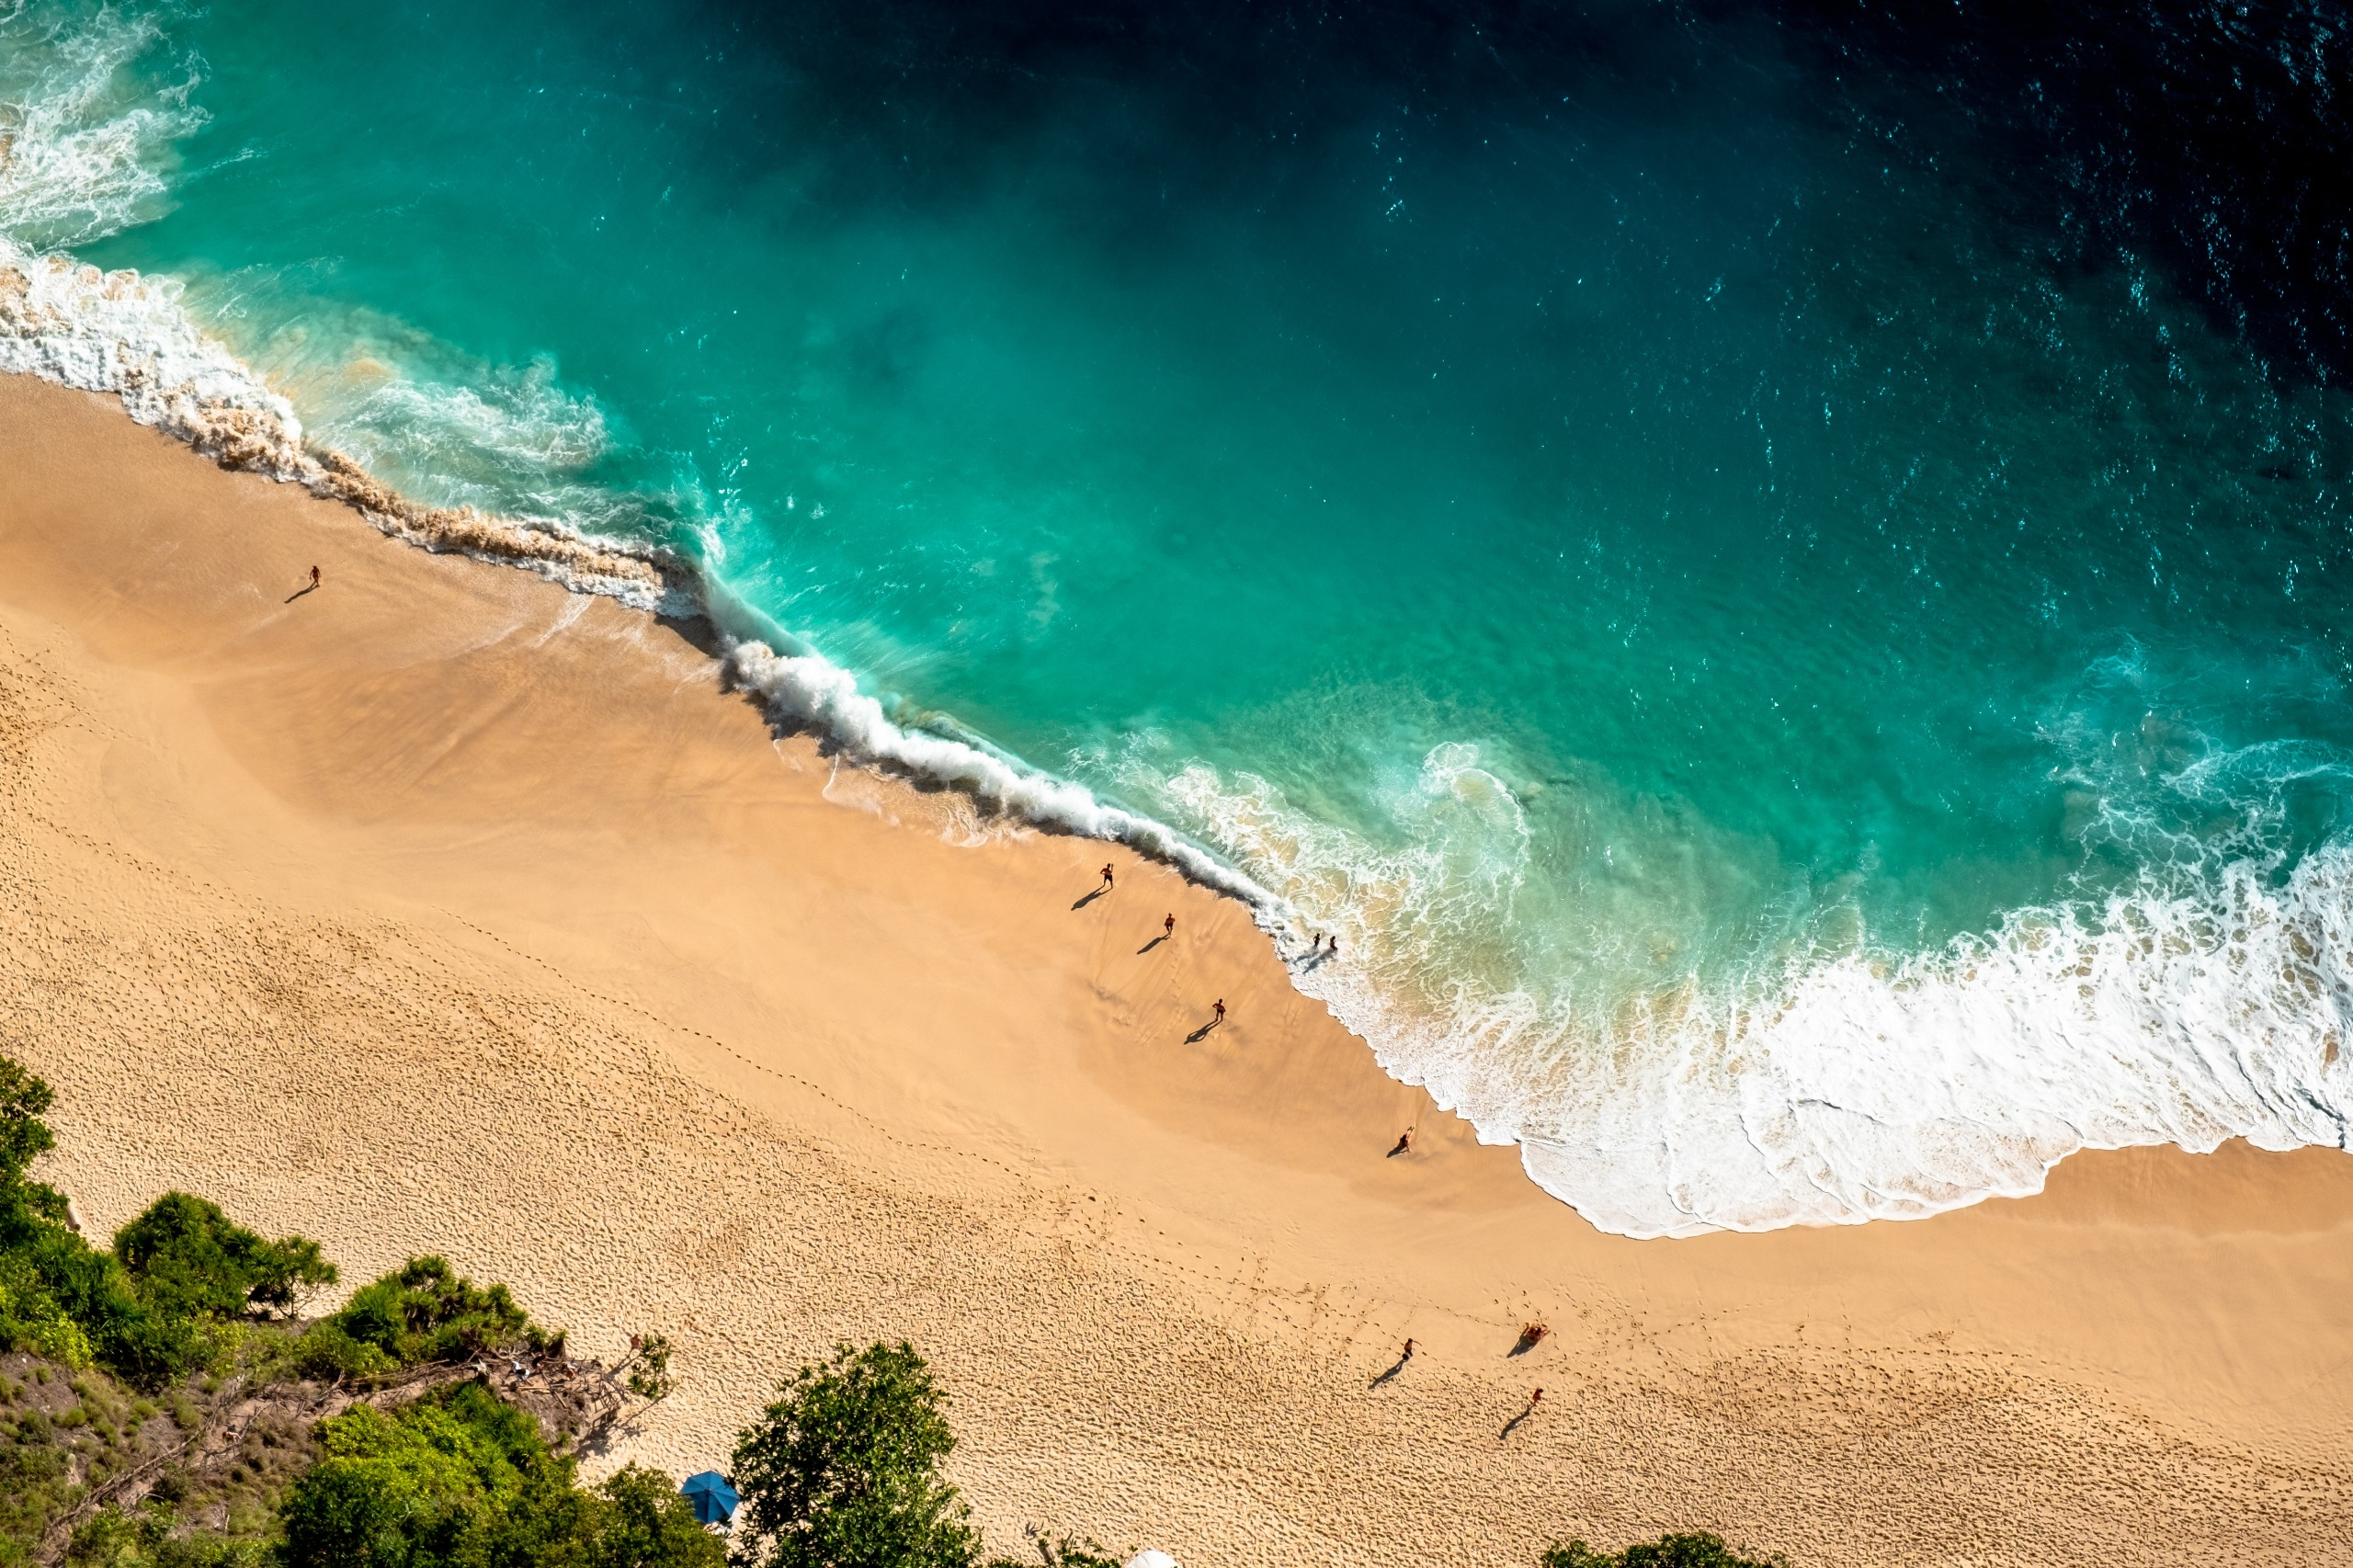 Drone shot of beach with people on it.